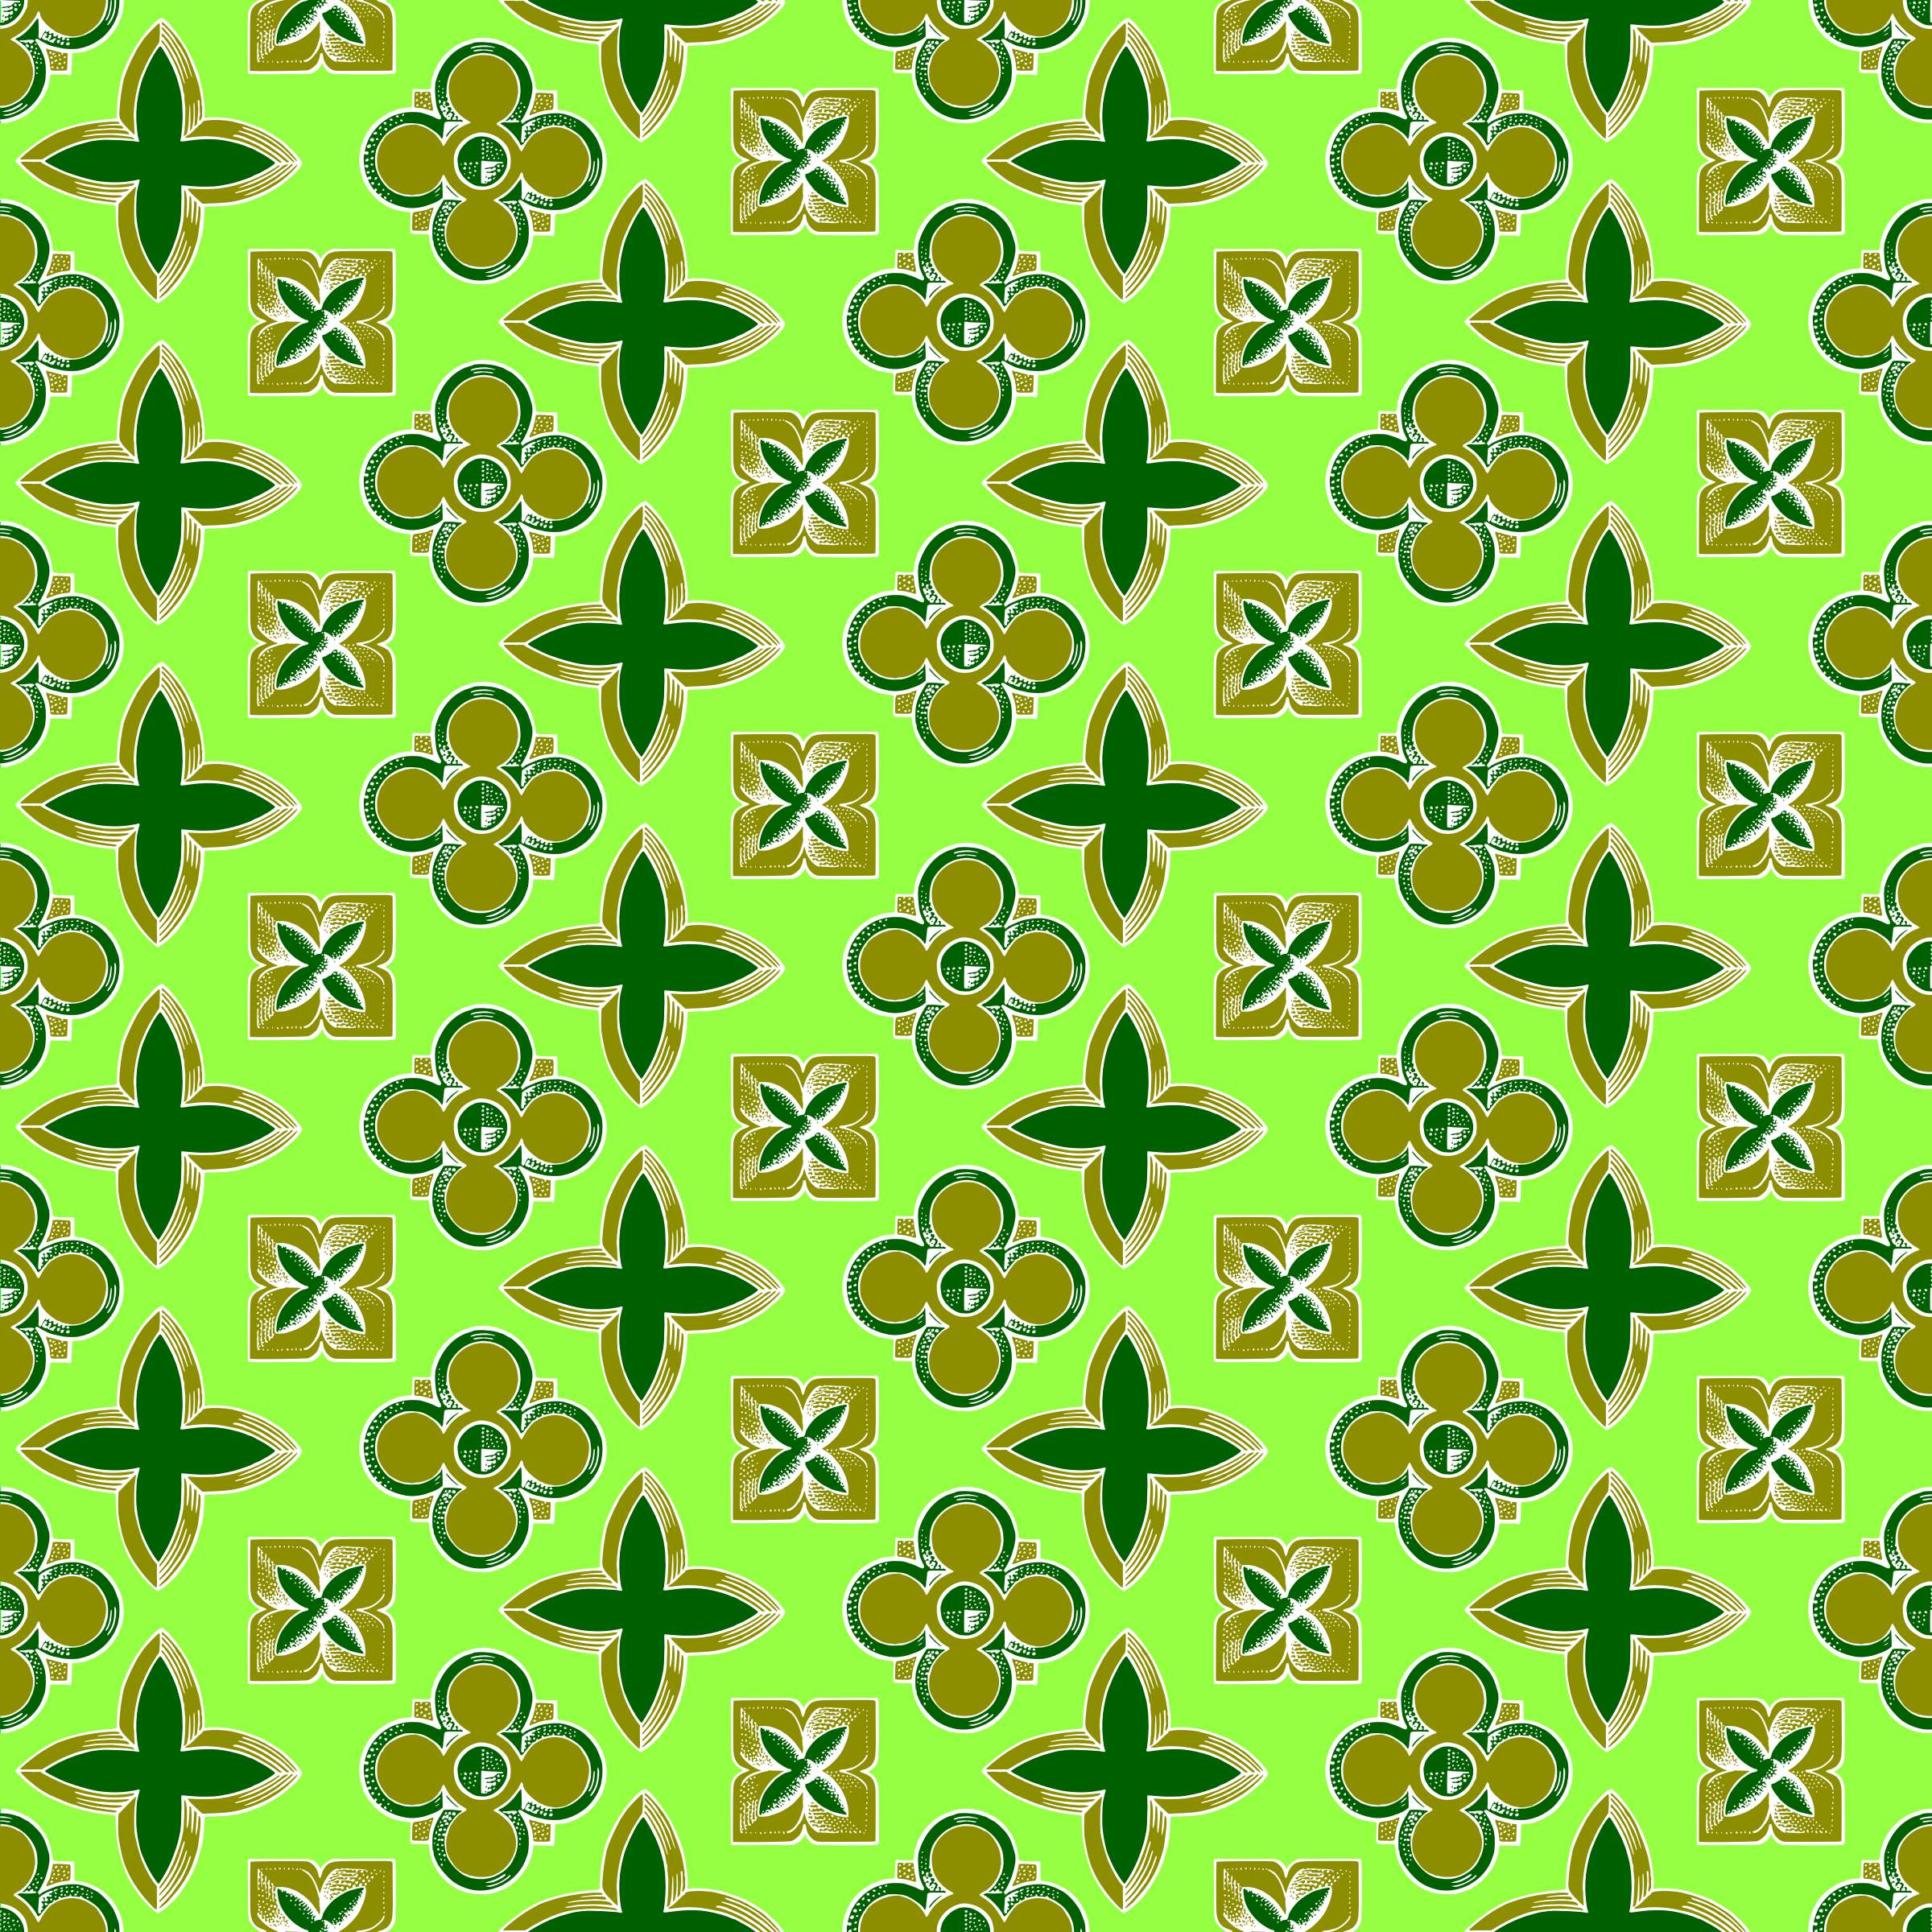 Background pattern 202 (colour 2) by Firkin